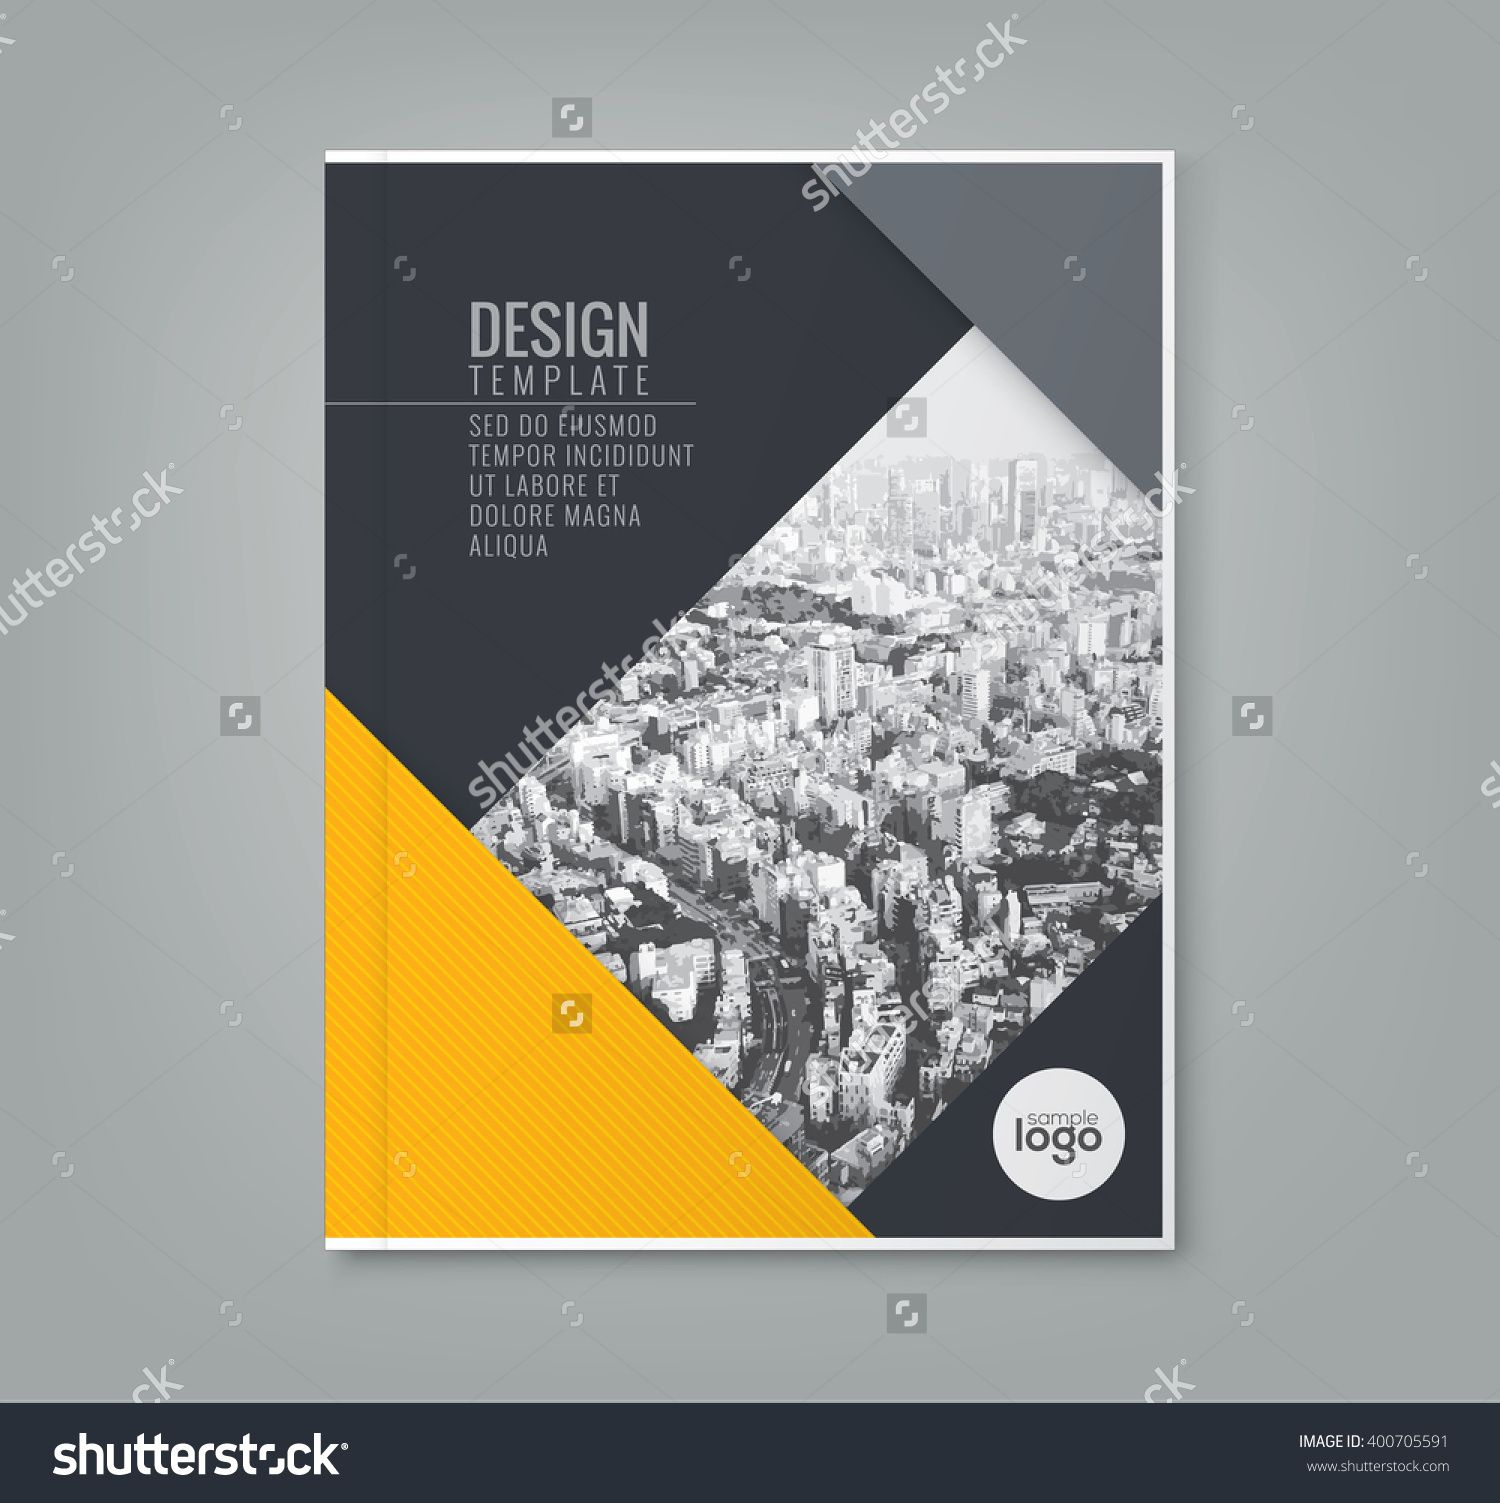 Book Cover Background Color : Minimal simple yellow color design template background for